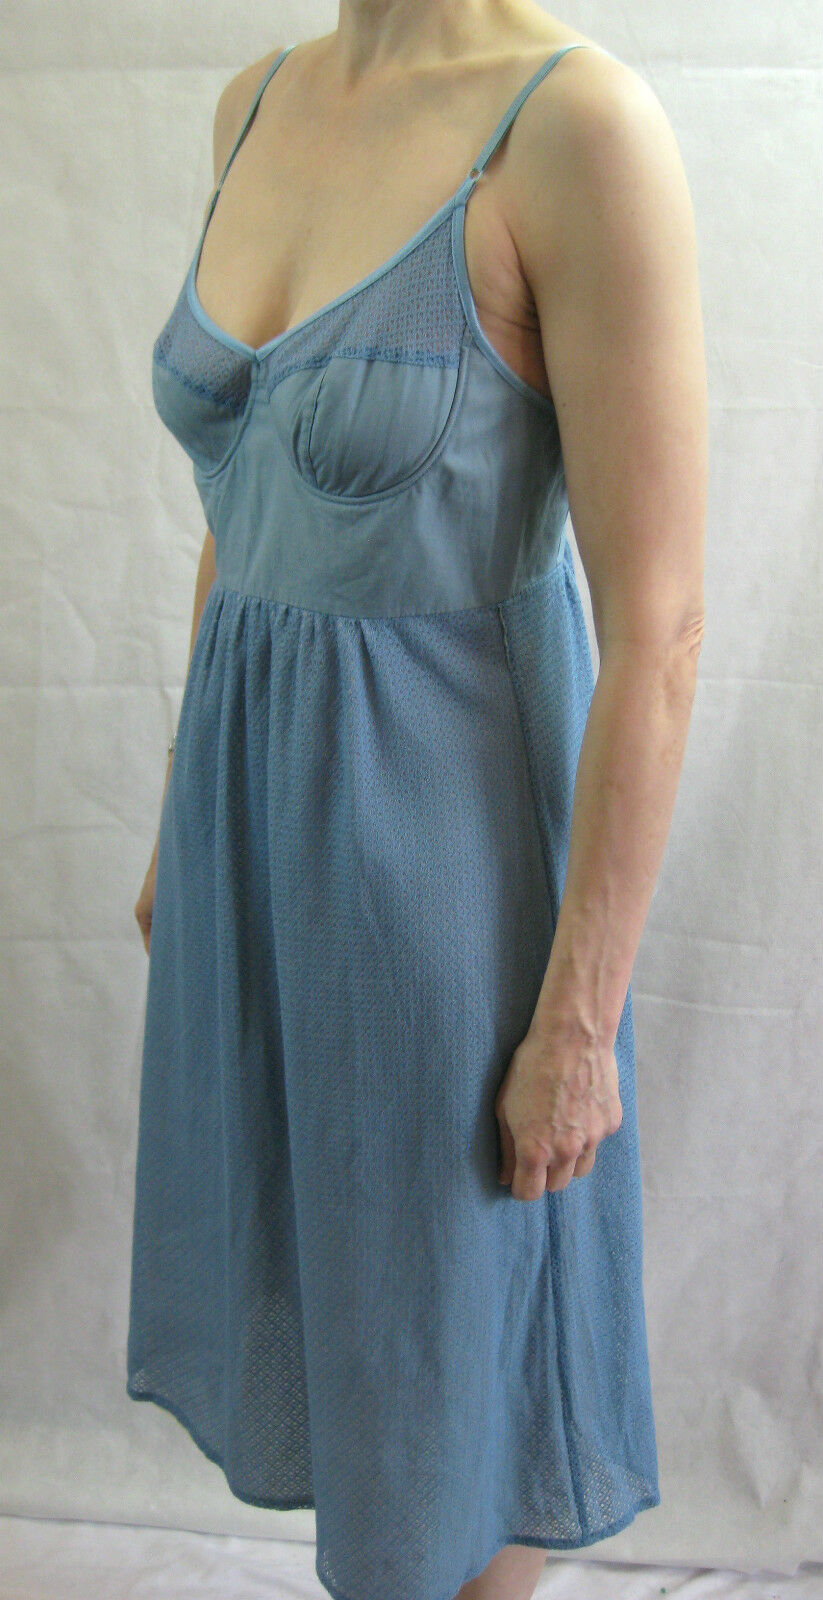 Sally Smith Größe 10 Blau Cotton Casual Dress